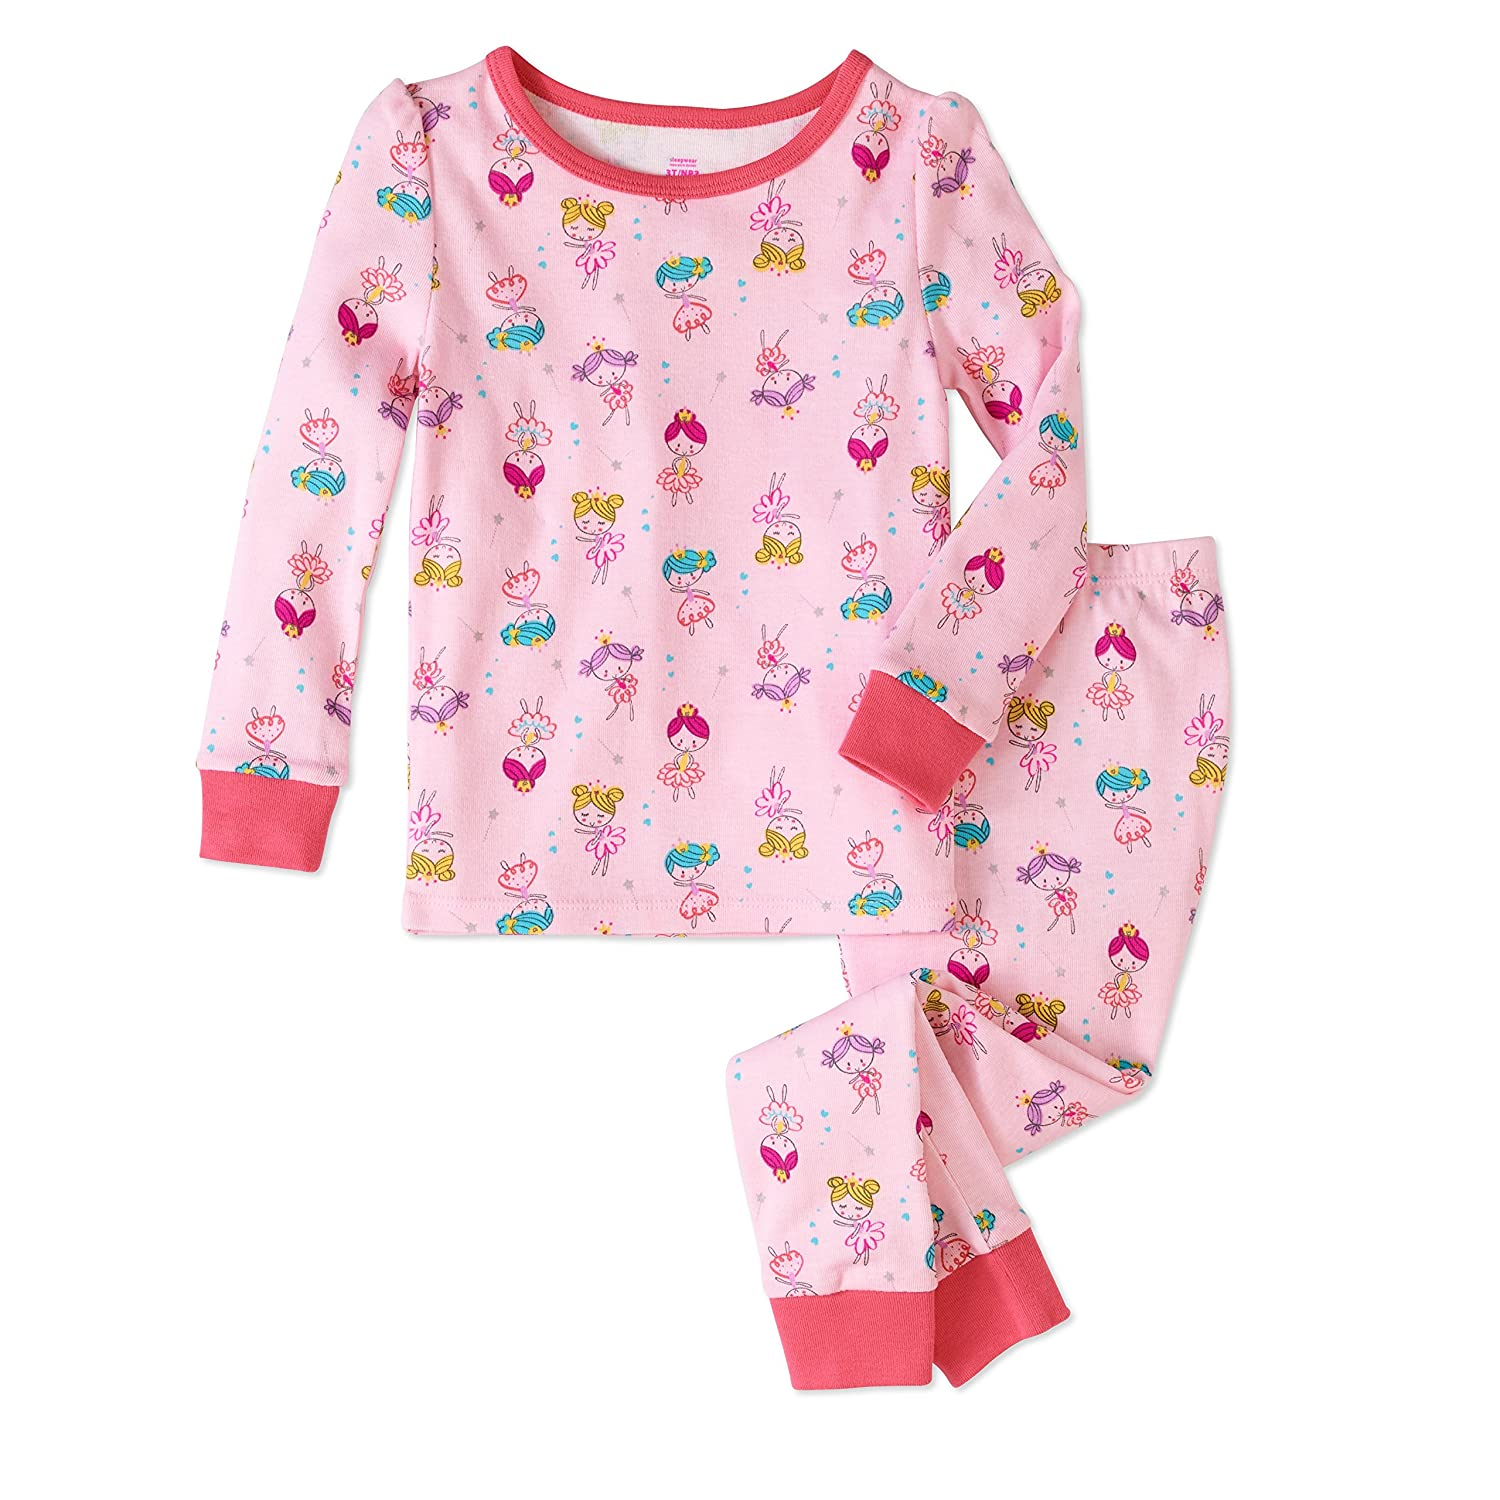 Baby and Toddler Girls Snug Fit Graphic Pajama Long Sleeve Shirt and Pants Two-Piece Set 2T, Pink Princess